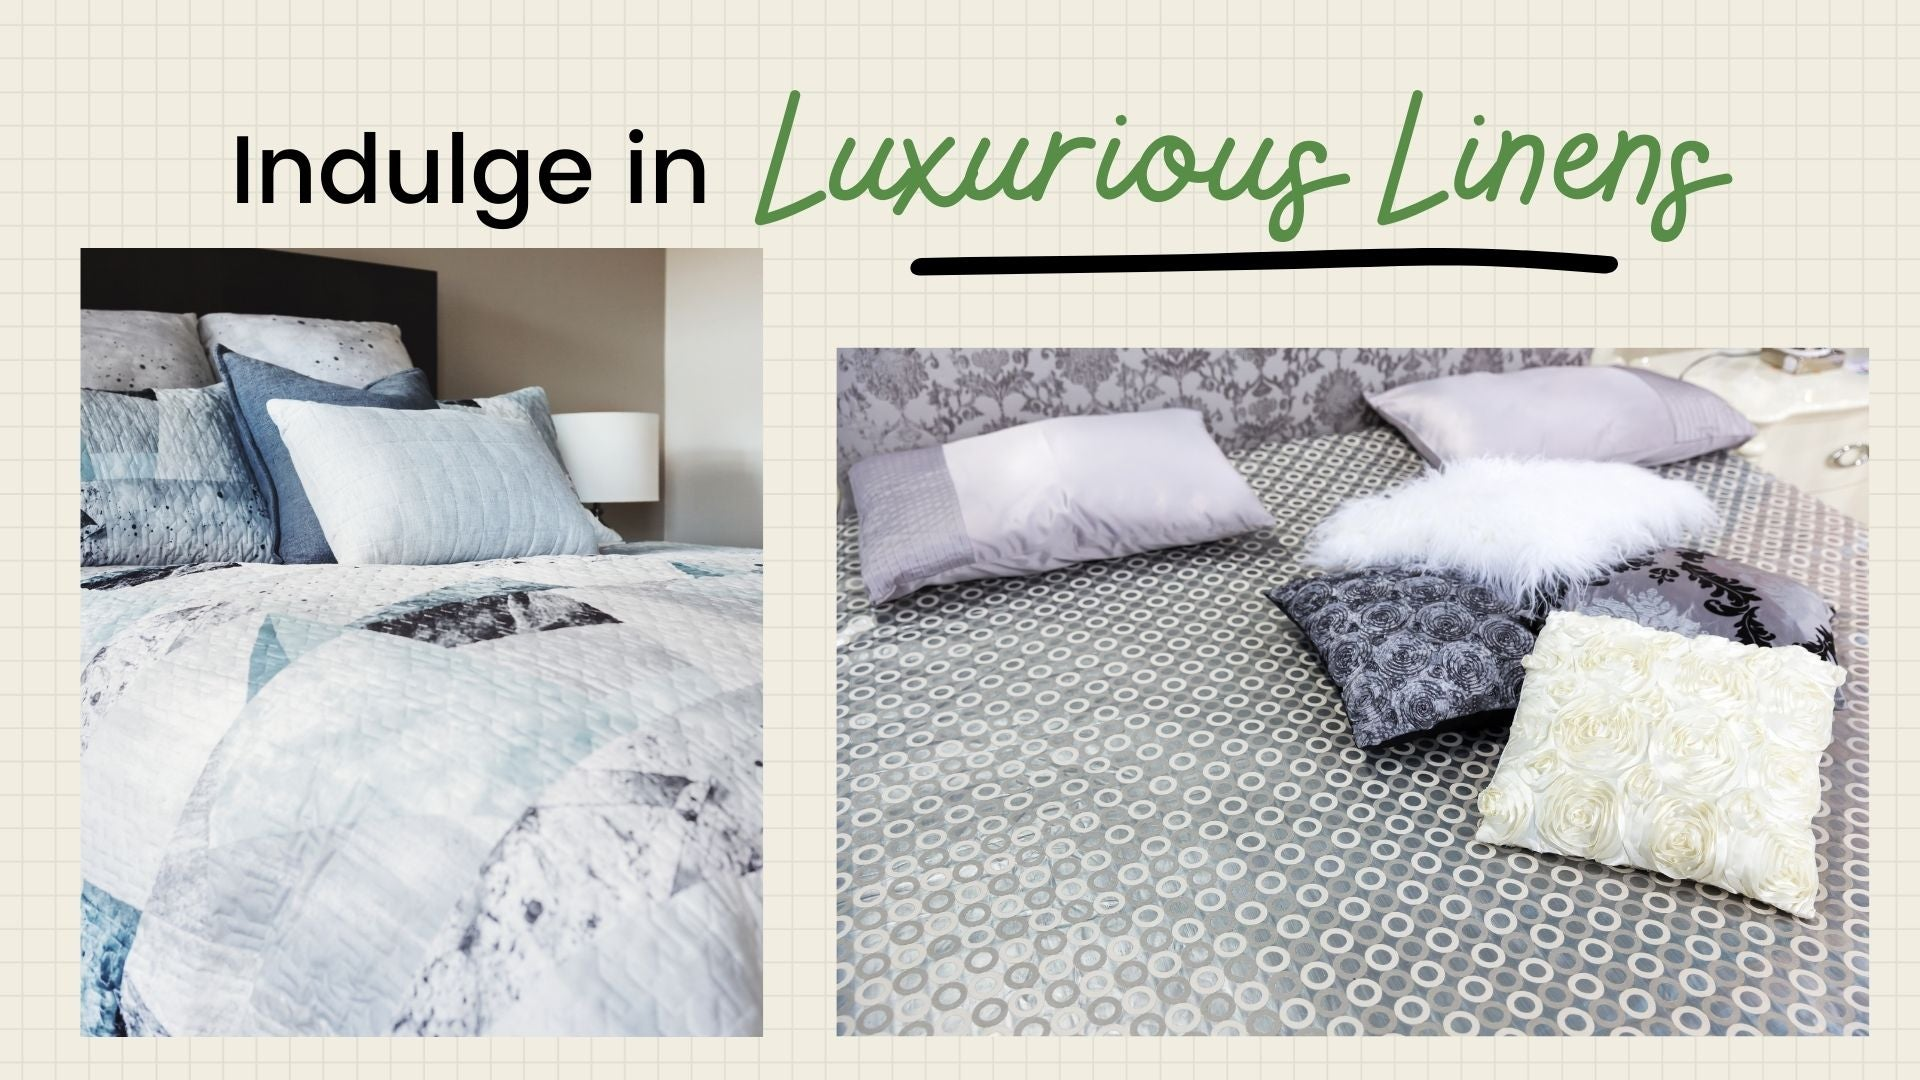 Indulge in Luxurious Linens